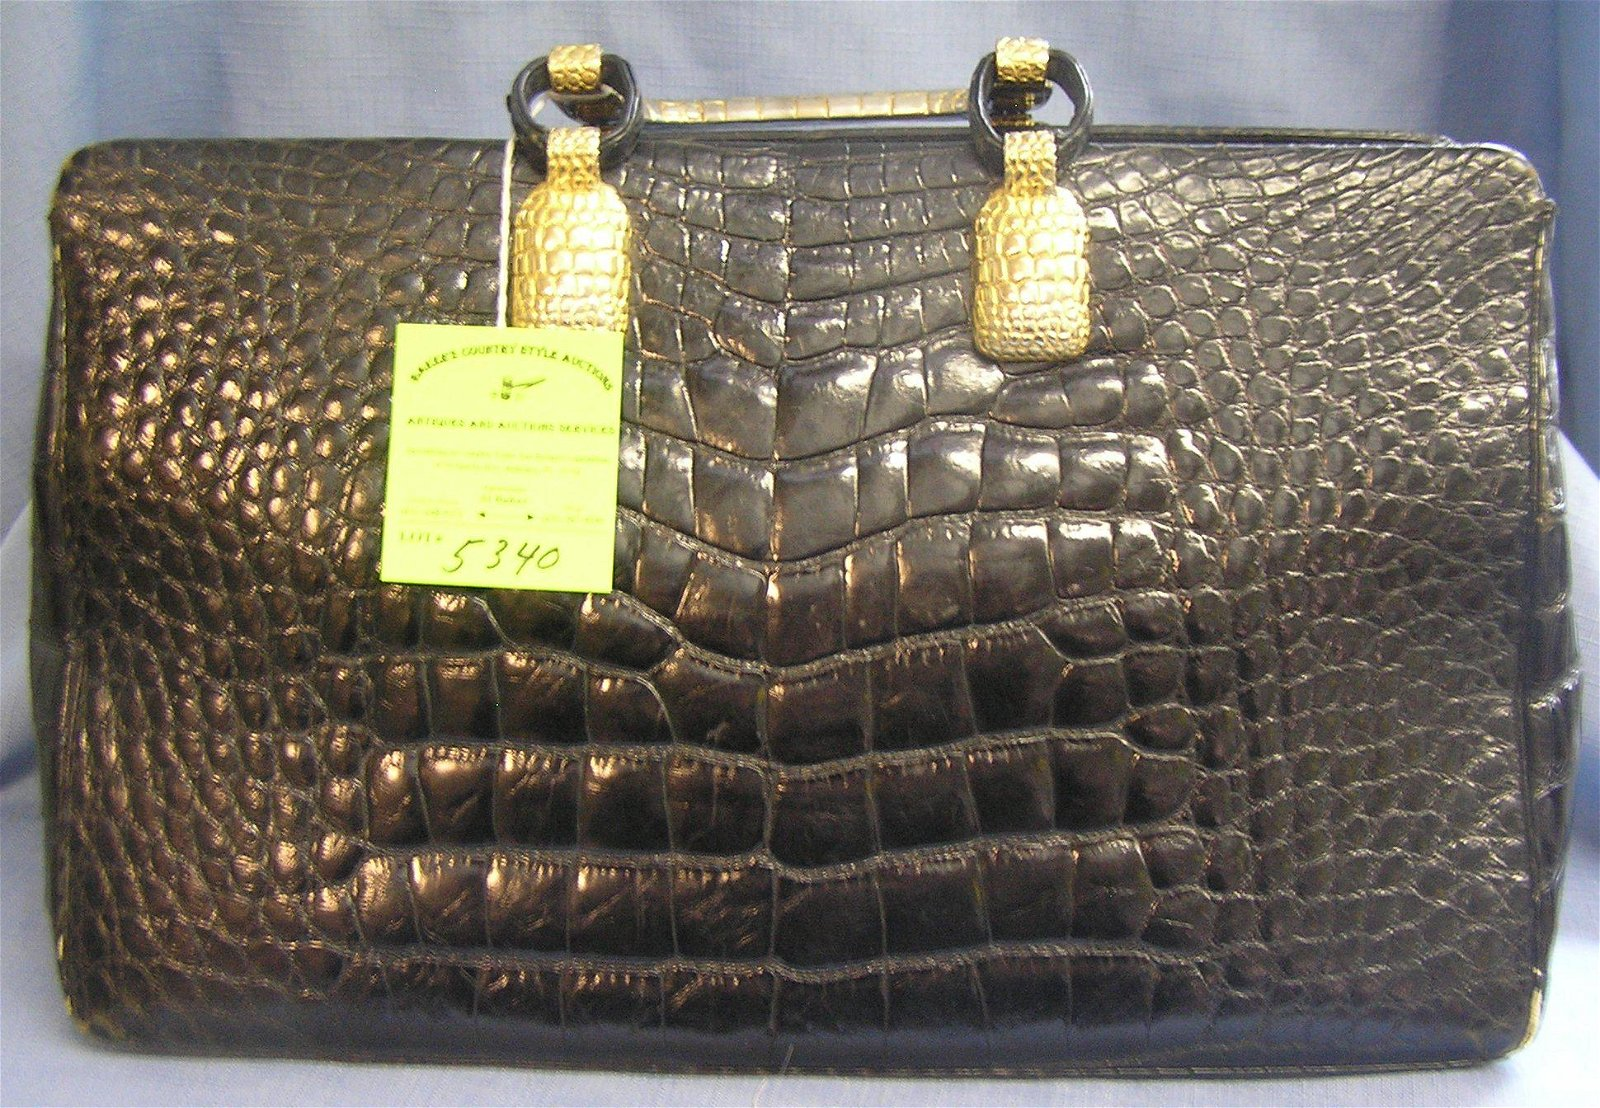 Very high quality Judith Leiber leather handbag